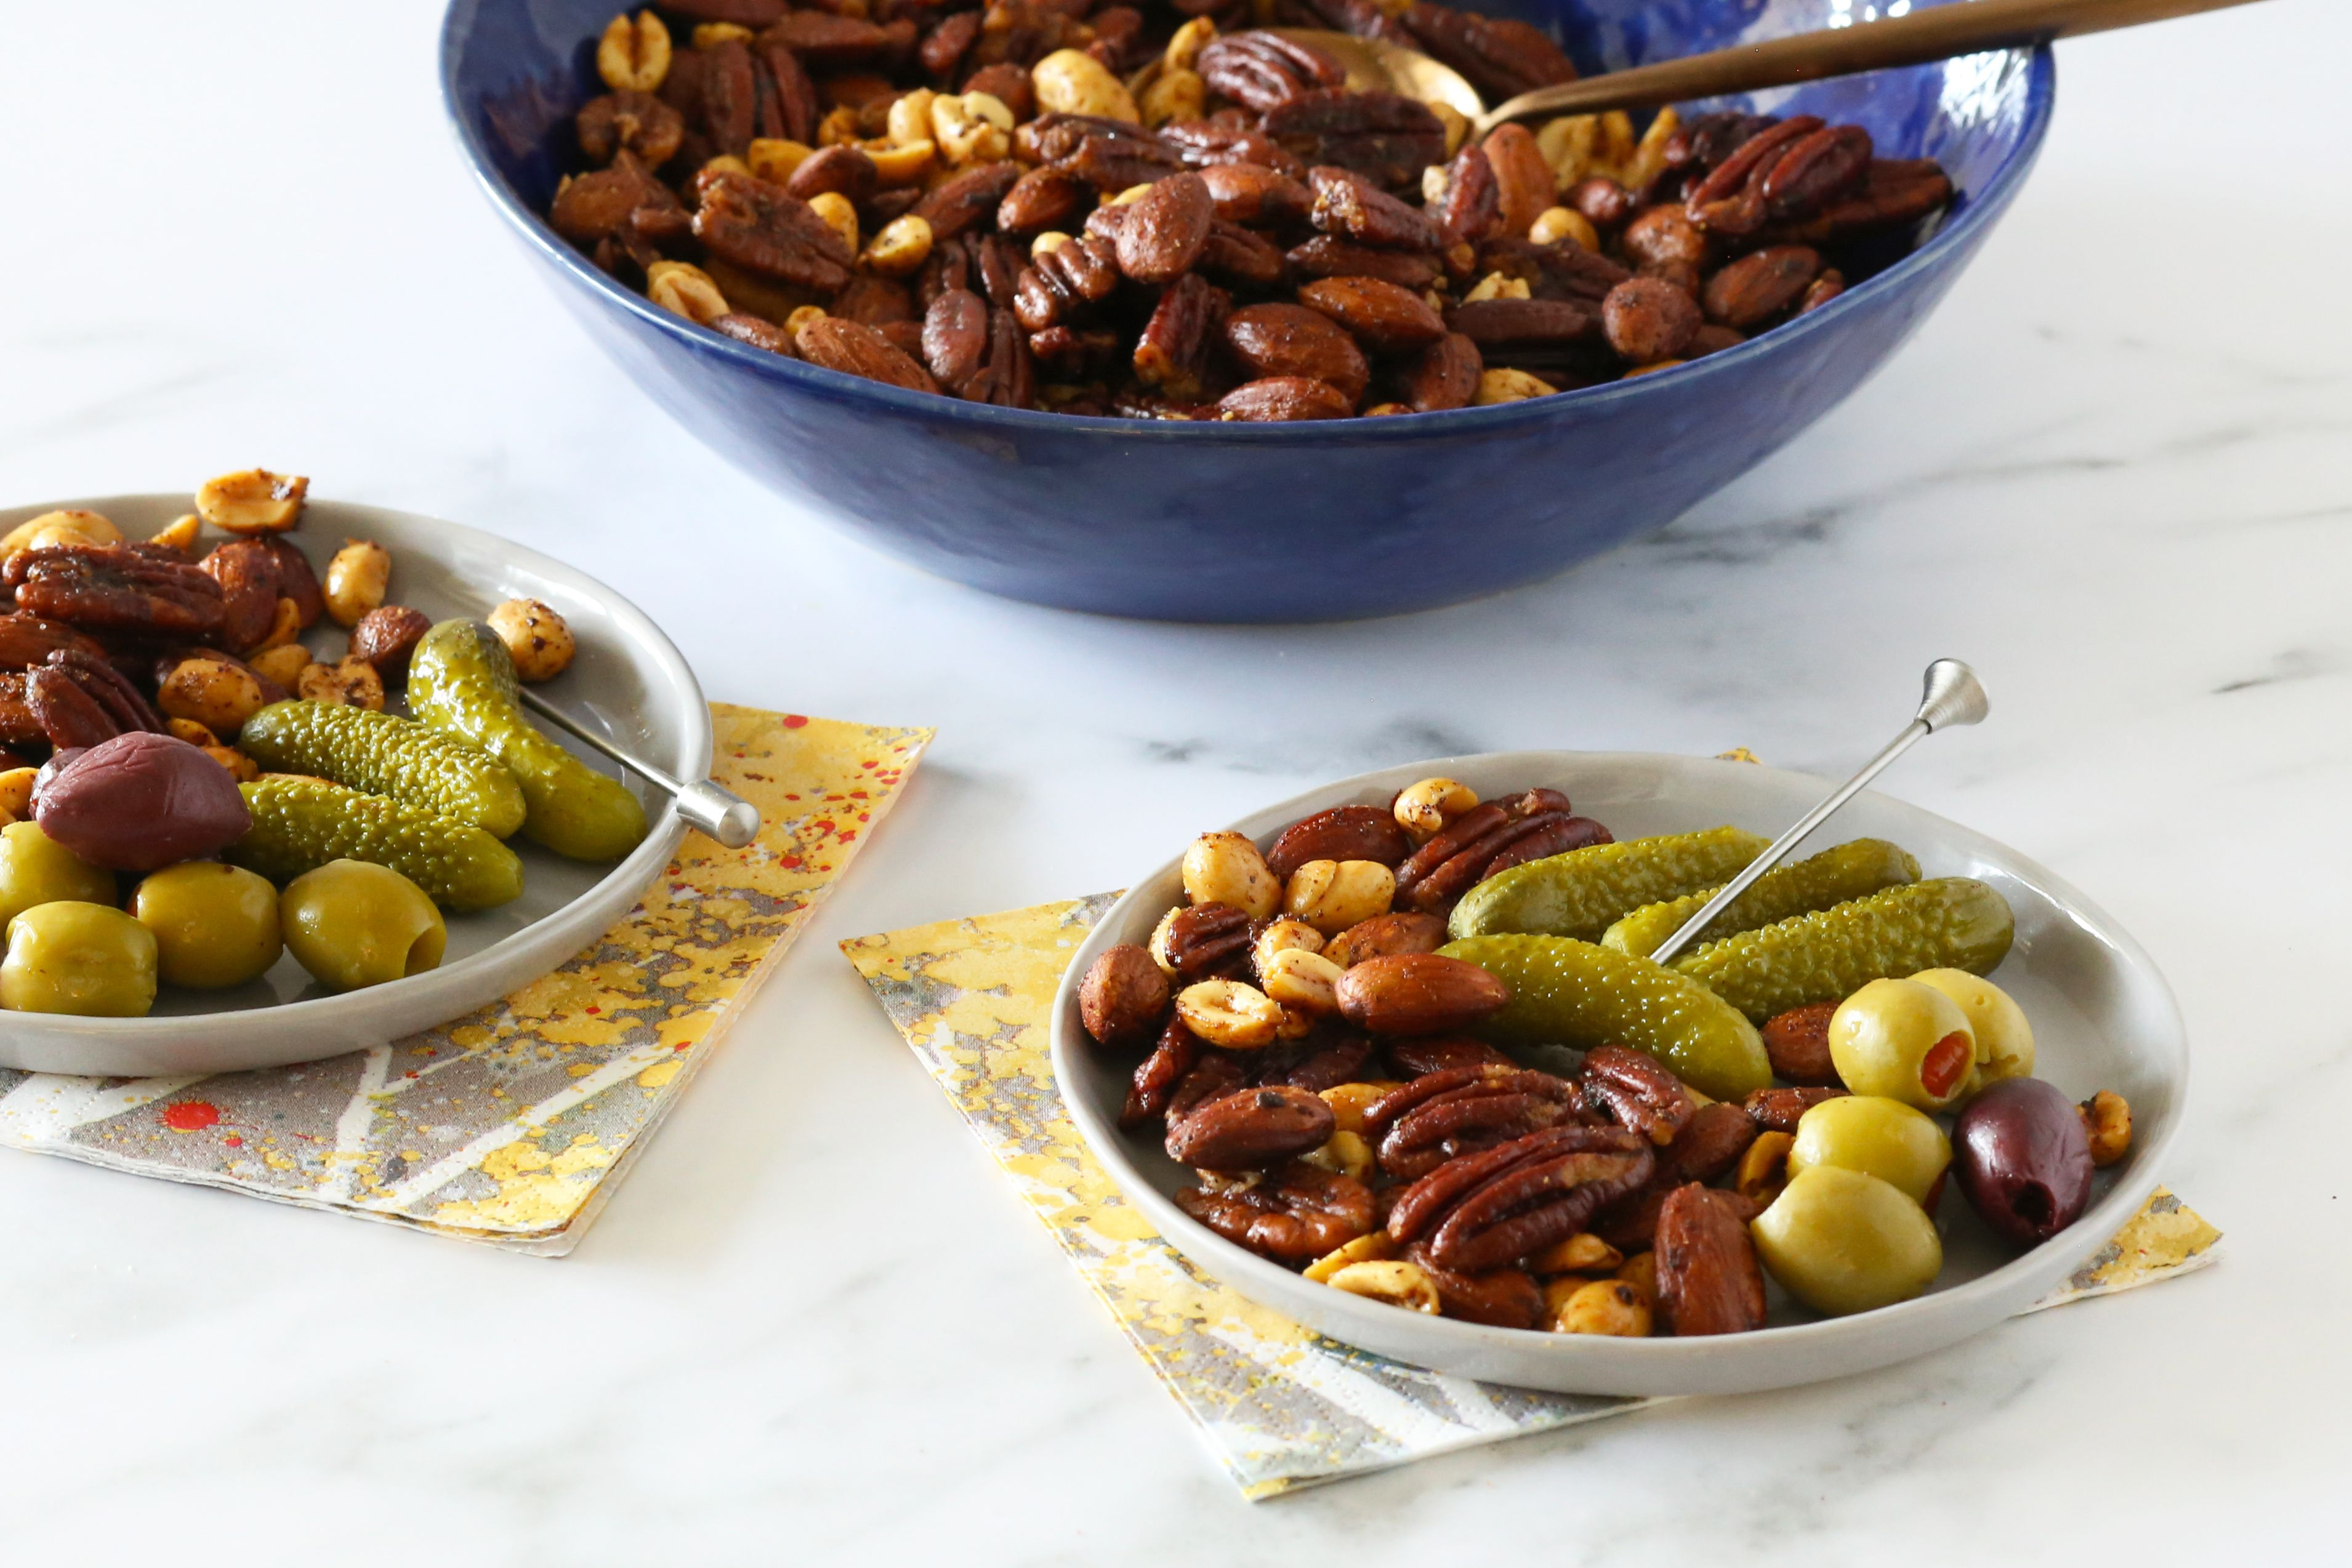 Mixed nuts with other finger foods.